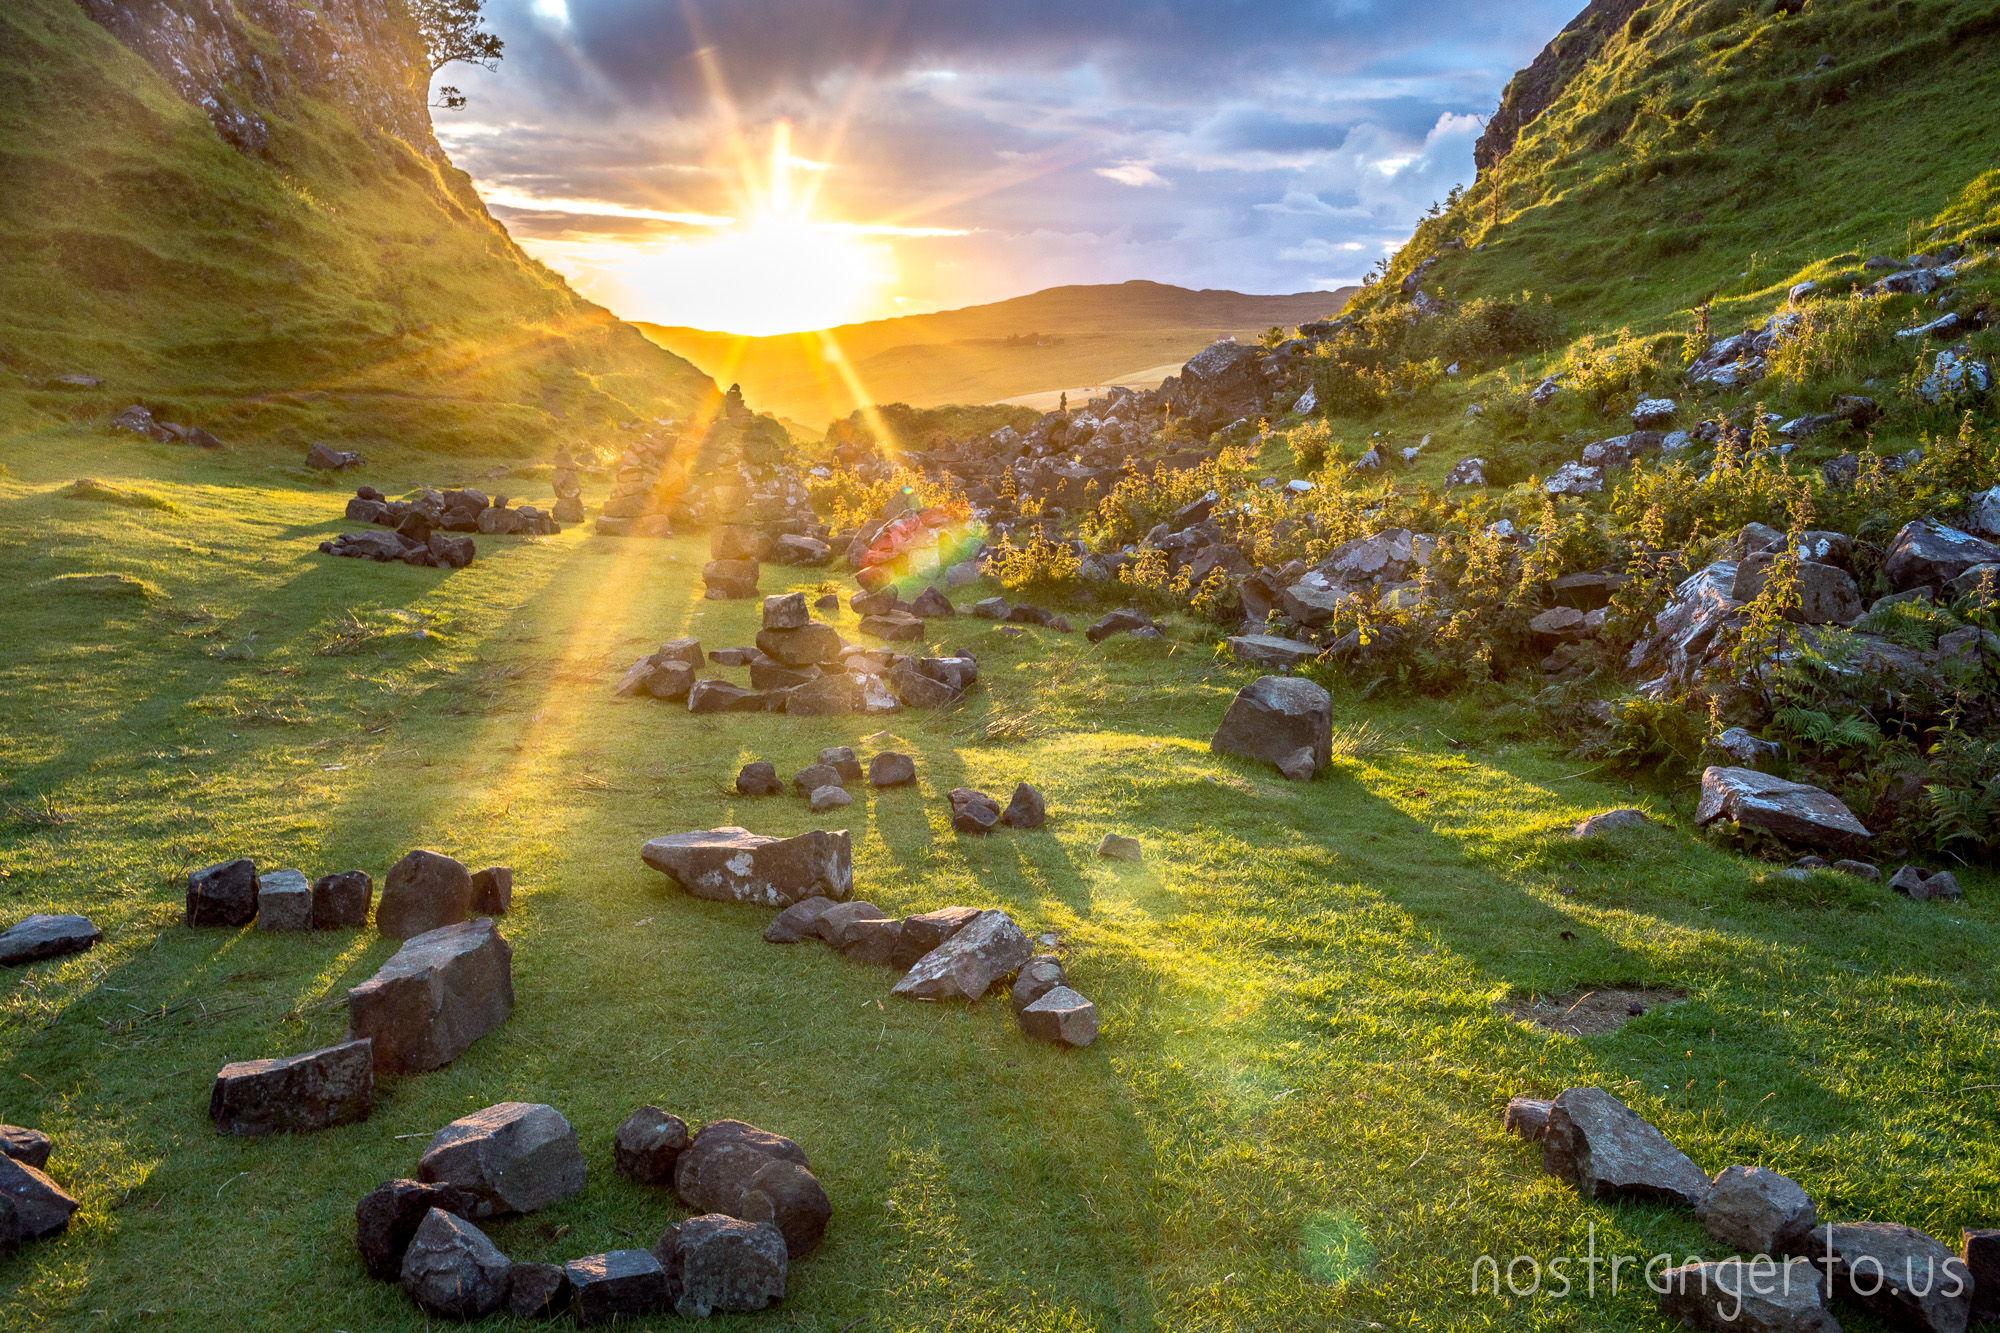 Stones magically arrange themselves in the Fairy Glen near Uig on the Isle of Skye, Scotland